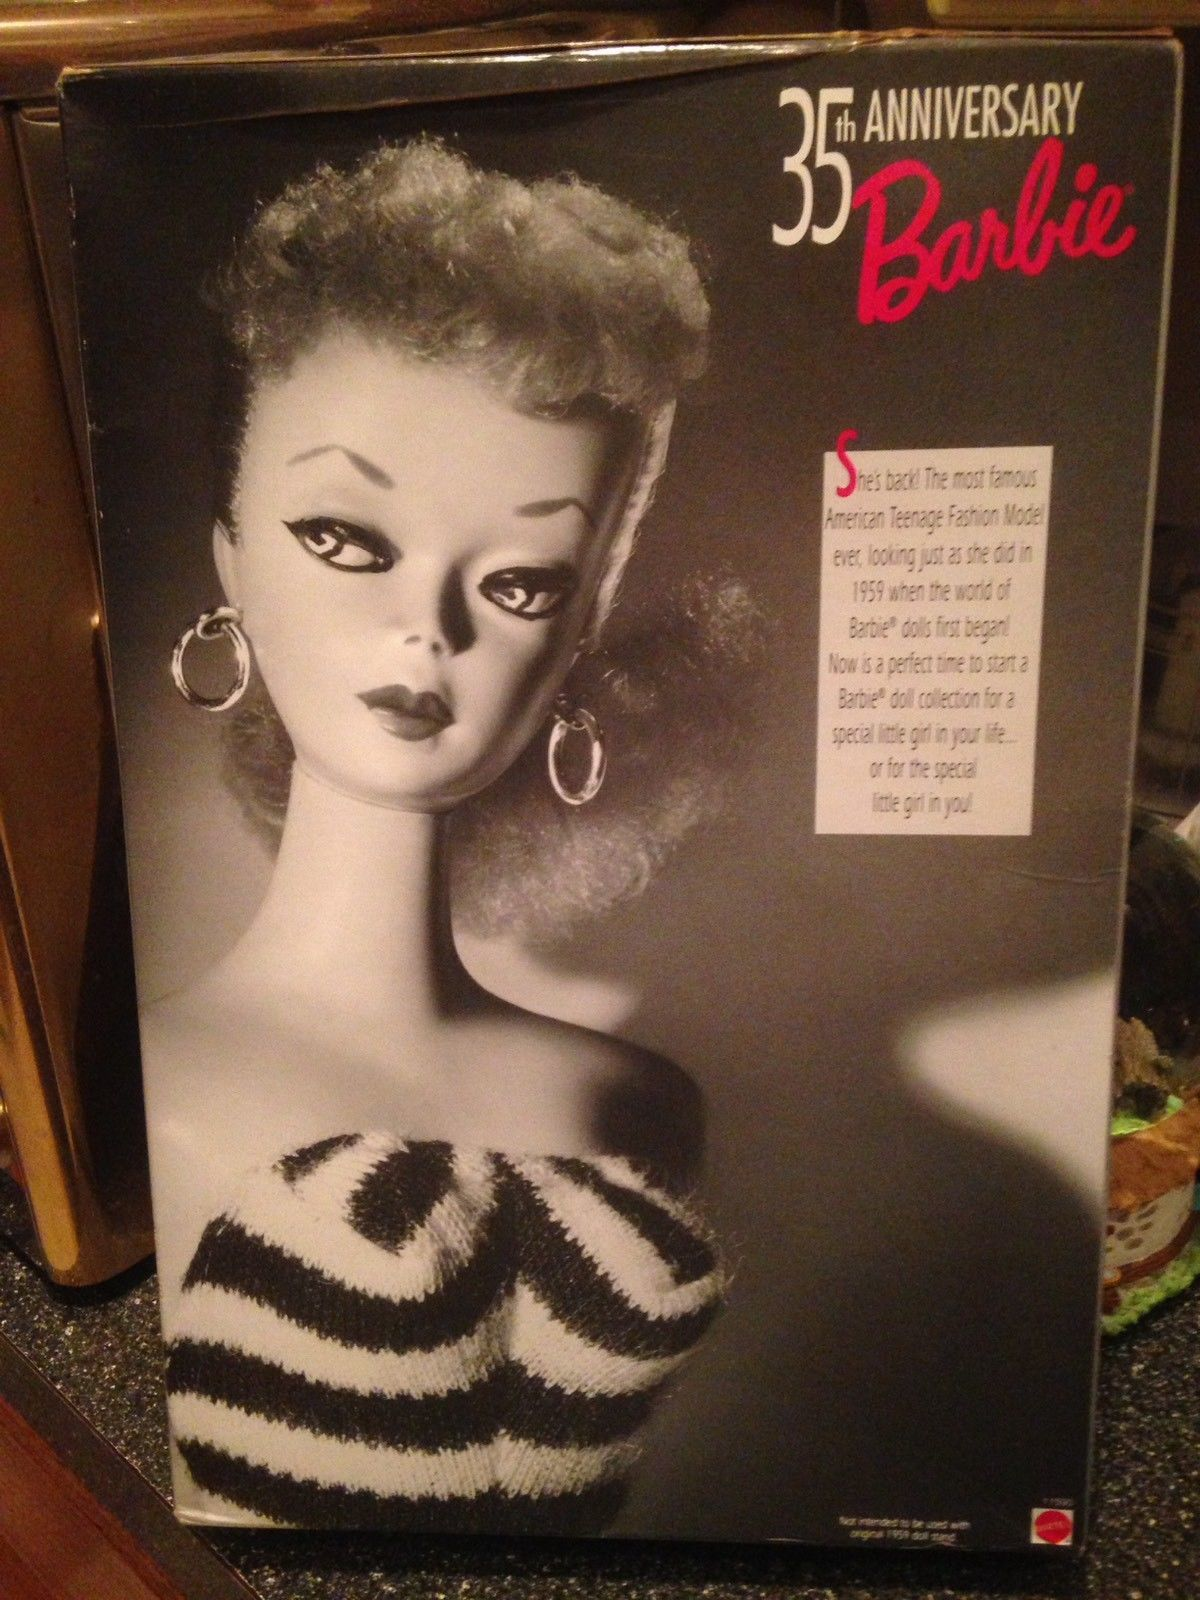 Barbie 35th Anniversary Special Edition Reproduction of Original 1959 Doll & Pkg